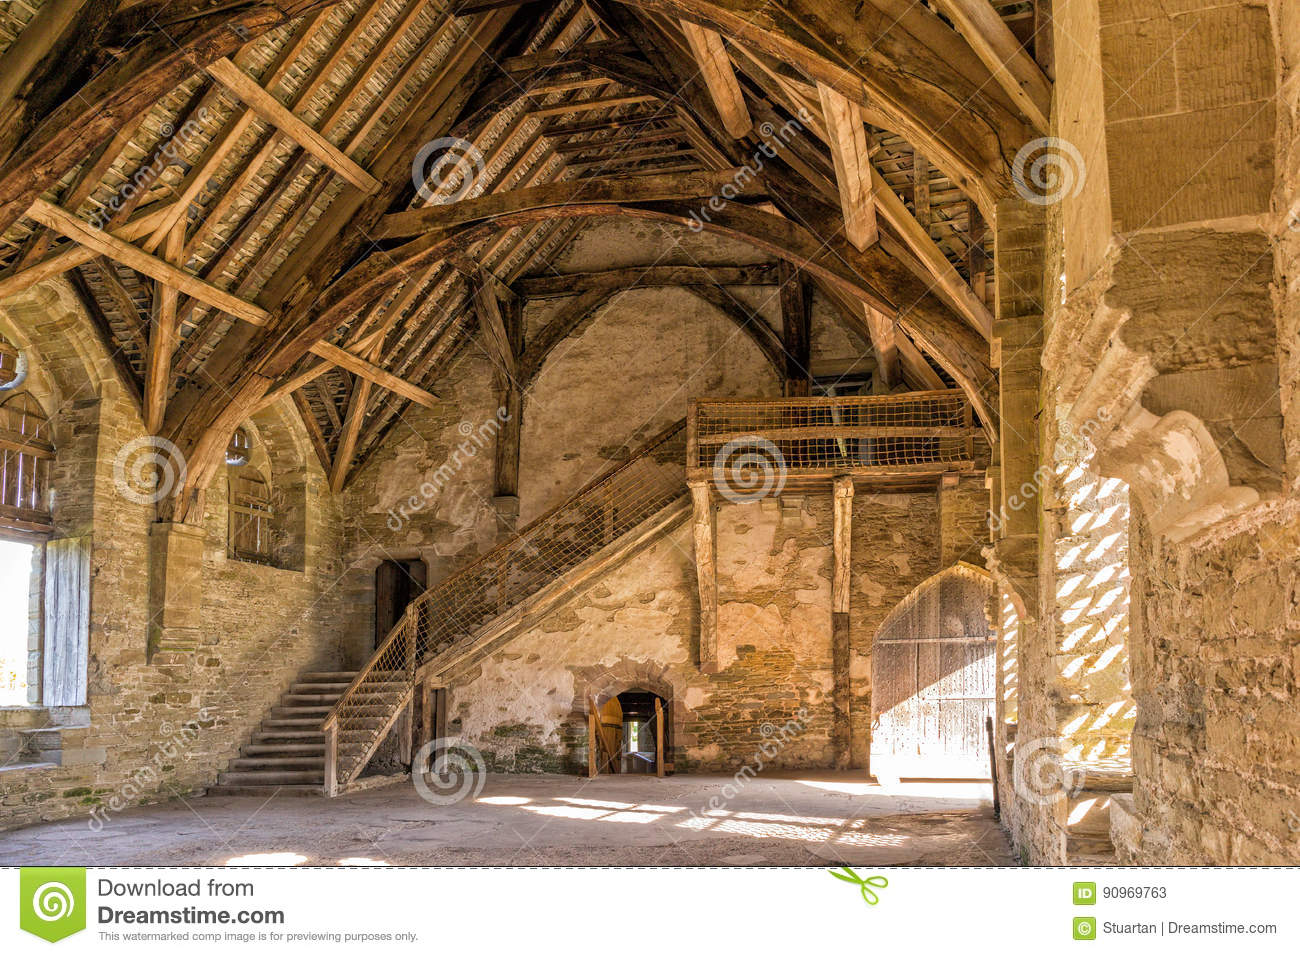 The Great Hall, Stokesay Castle, Shropshire, England.